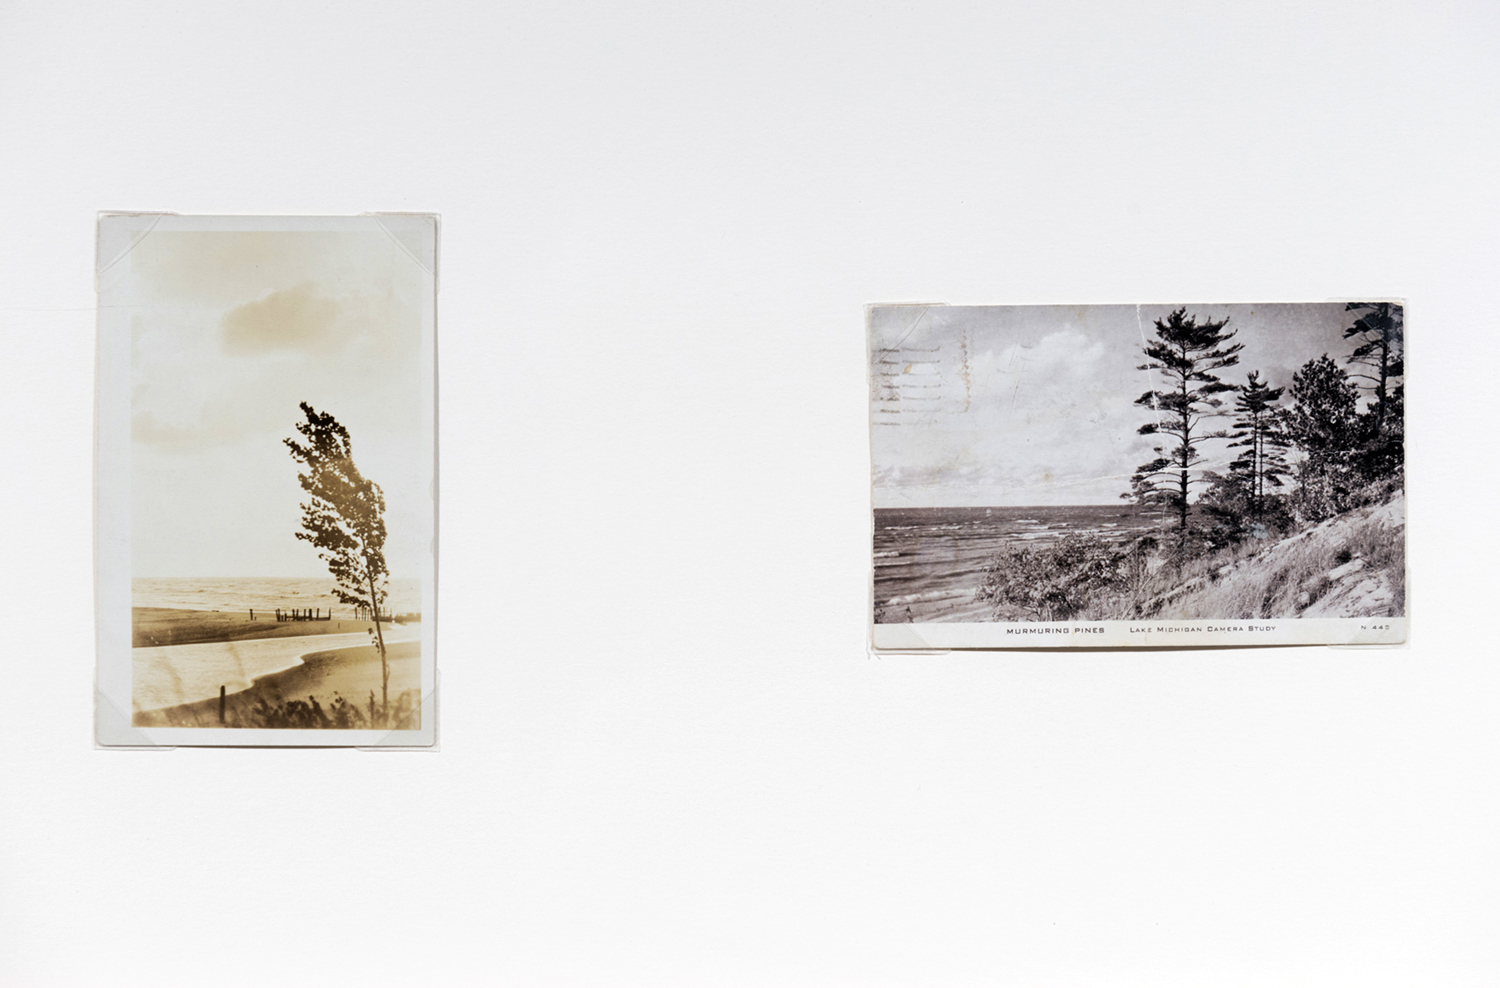 Air Mail , collection of postcards of the wind (selection), 2010 @Collaboration: Alexis Pernet, Daniel Canty & Dauphin Vincent  Photo by Paul Litherland